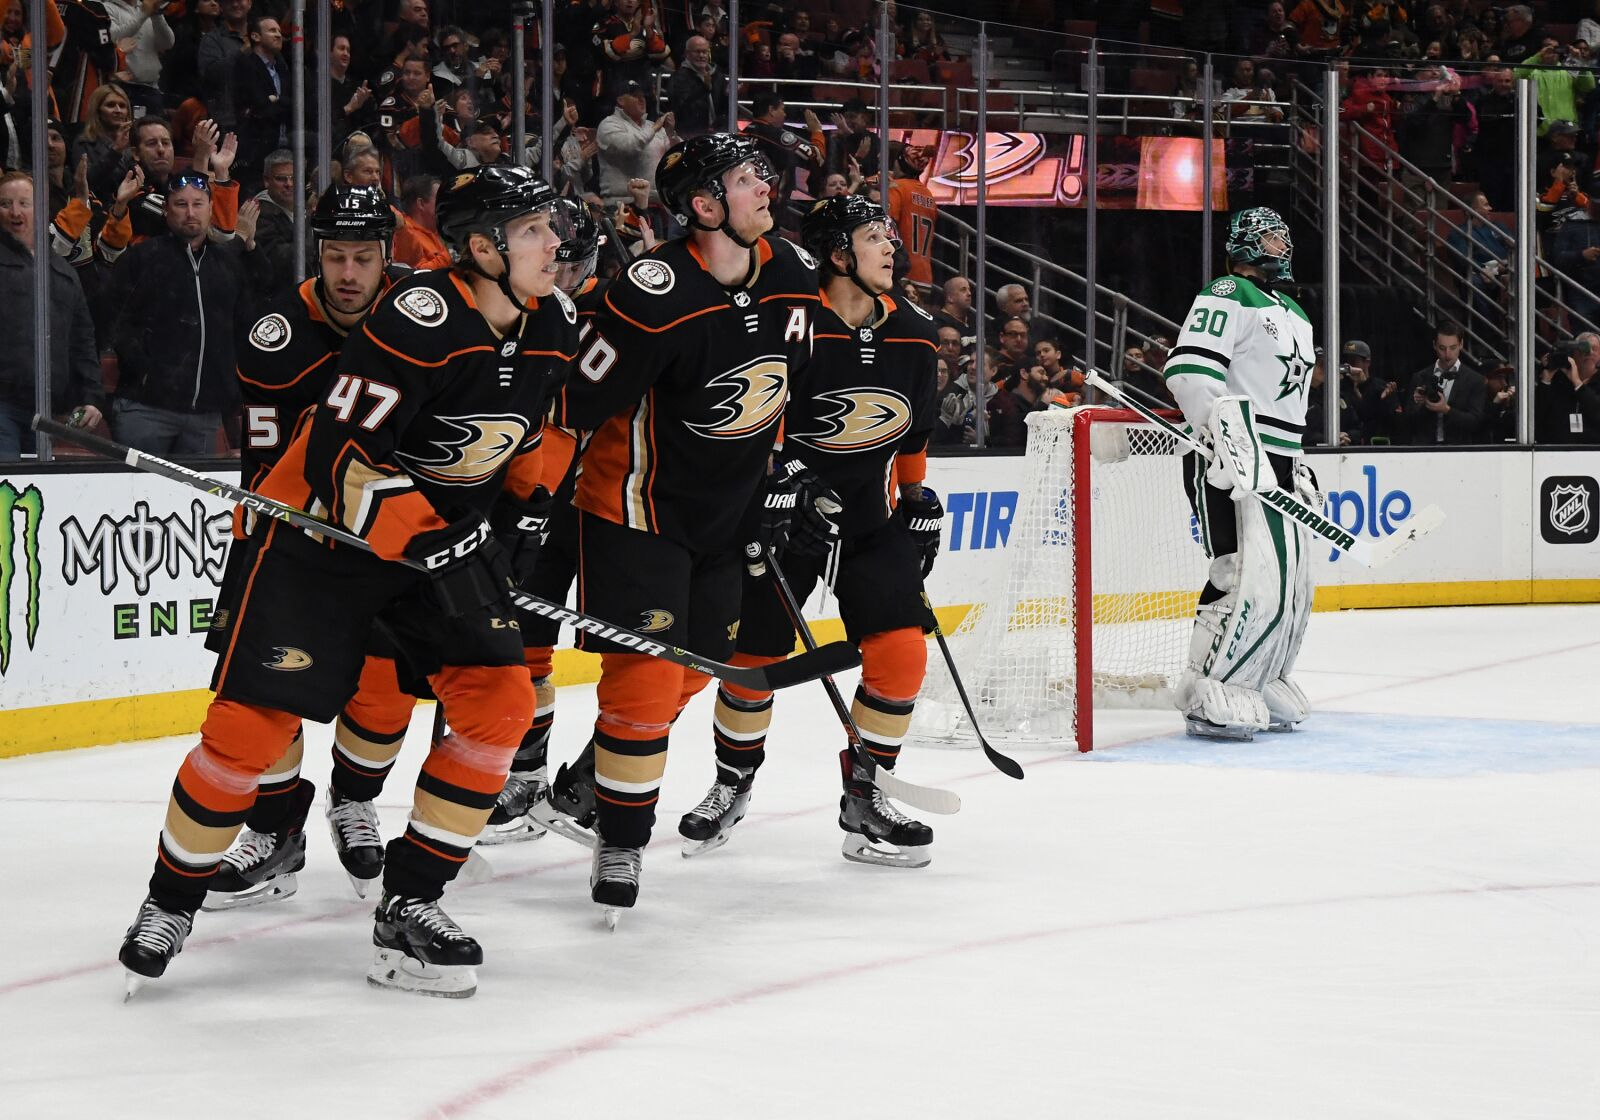 922597754-nhl-feb-21-stars-at-ducks.jpg